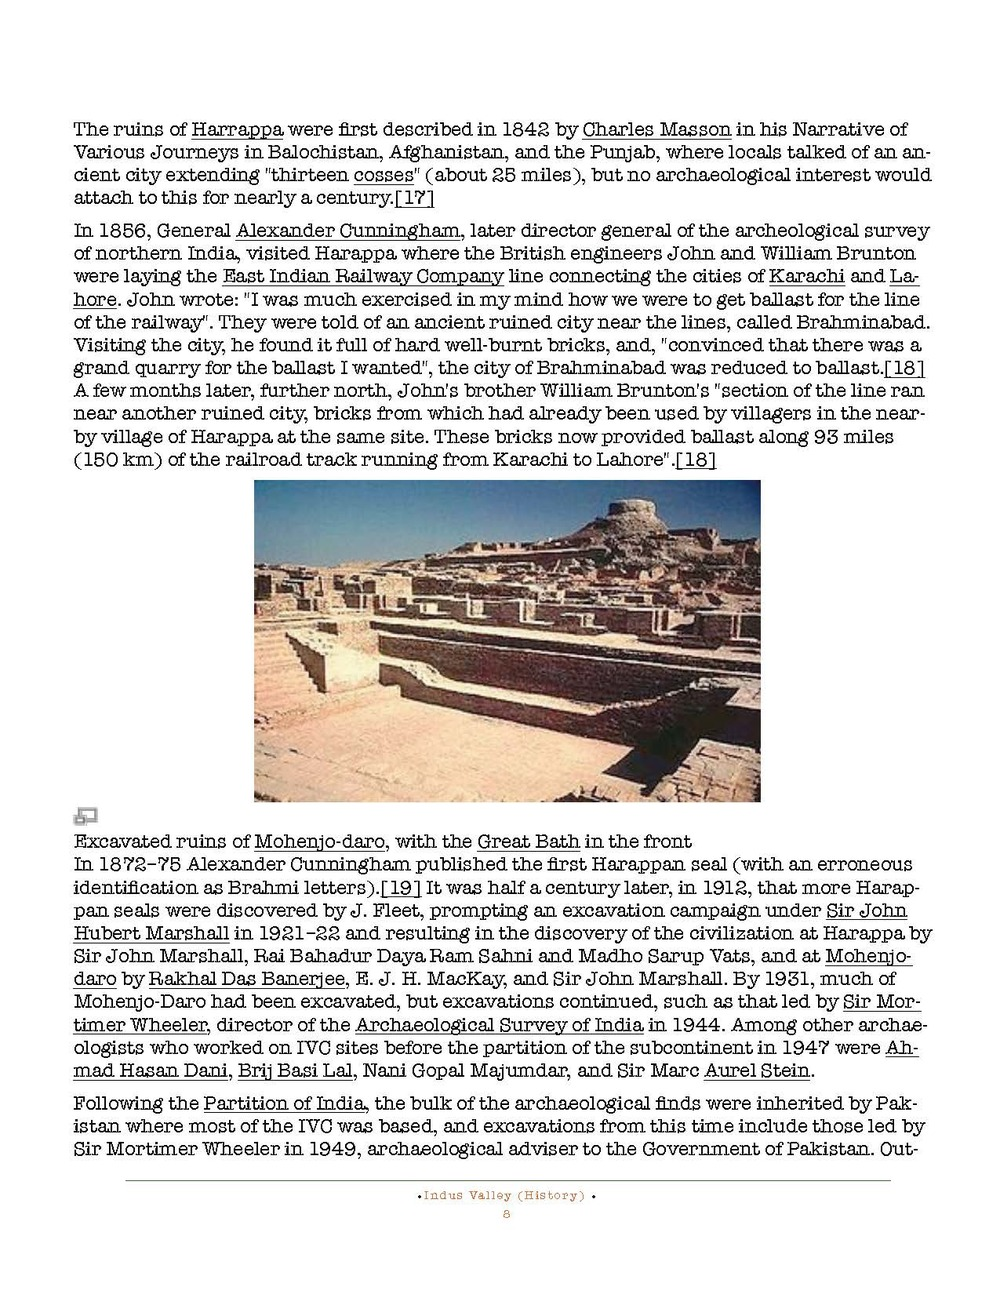 HOCE- Ancient India Notes_Page_008.jpg